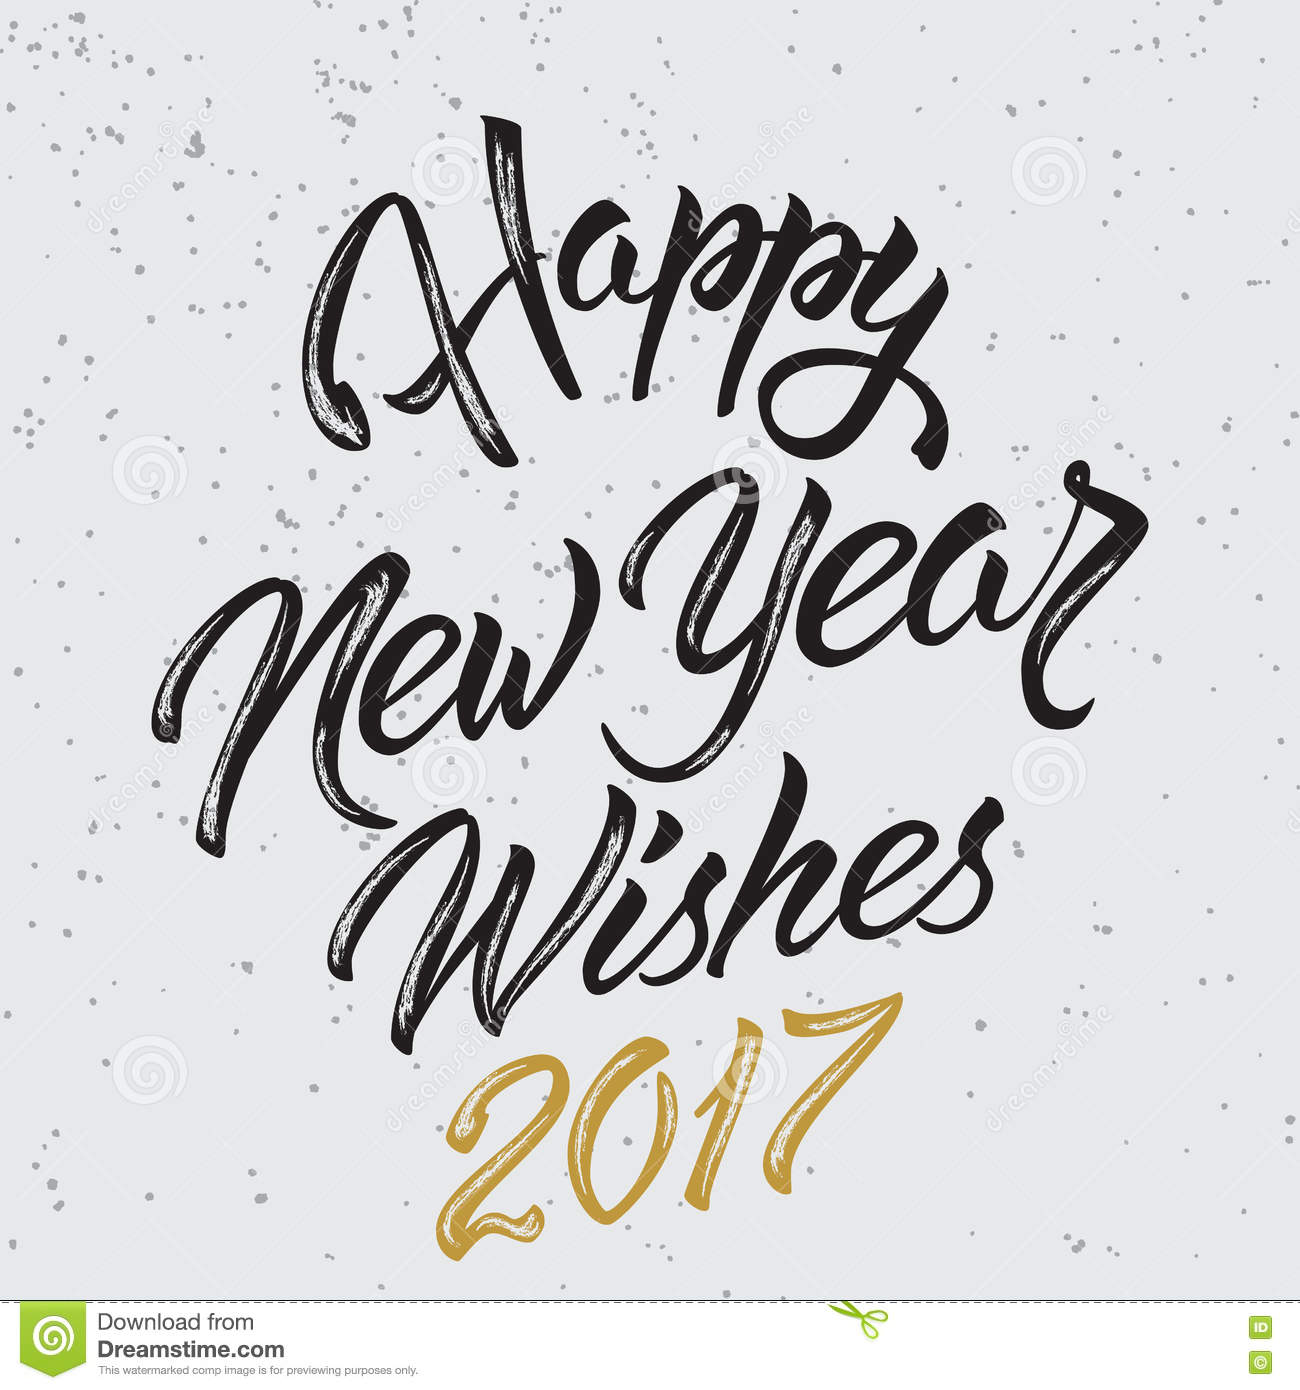 Happy New Year Wishes 2017 stock vector. Illustration of font - 81141571